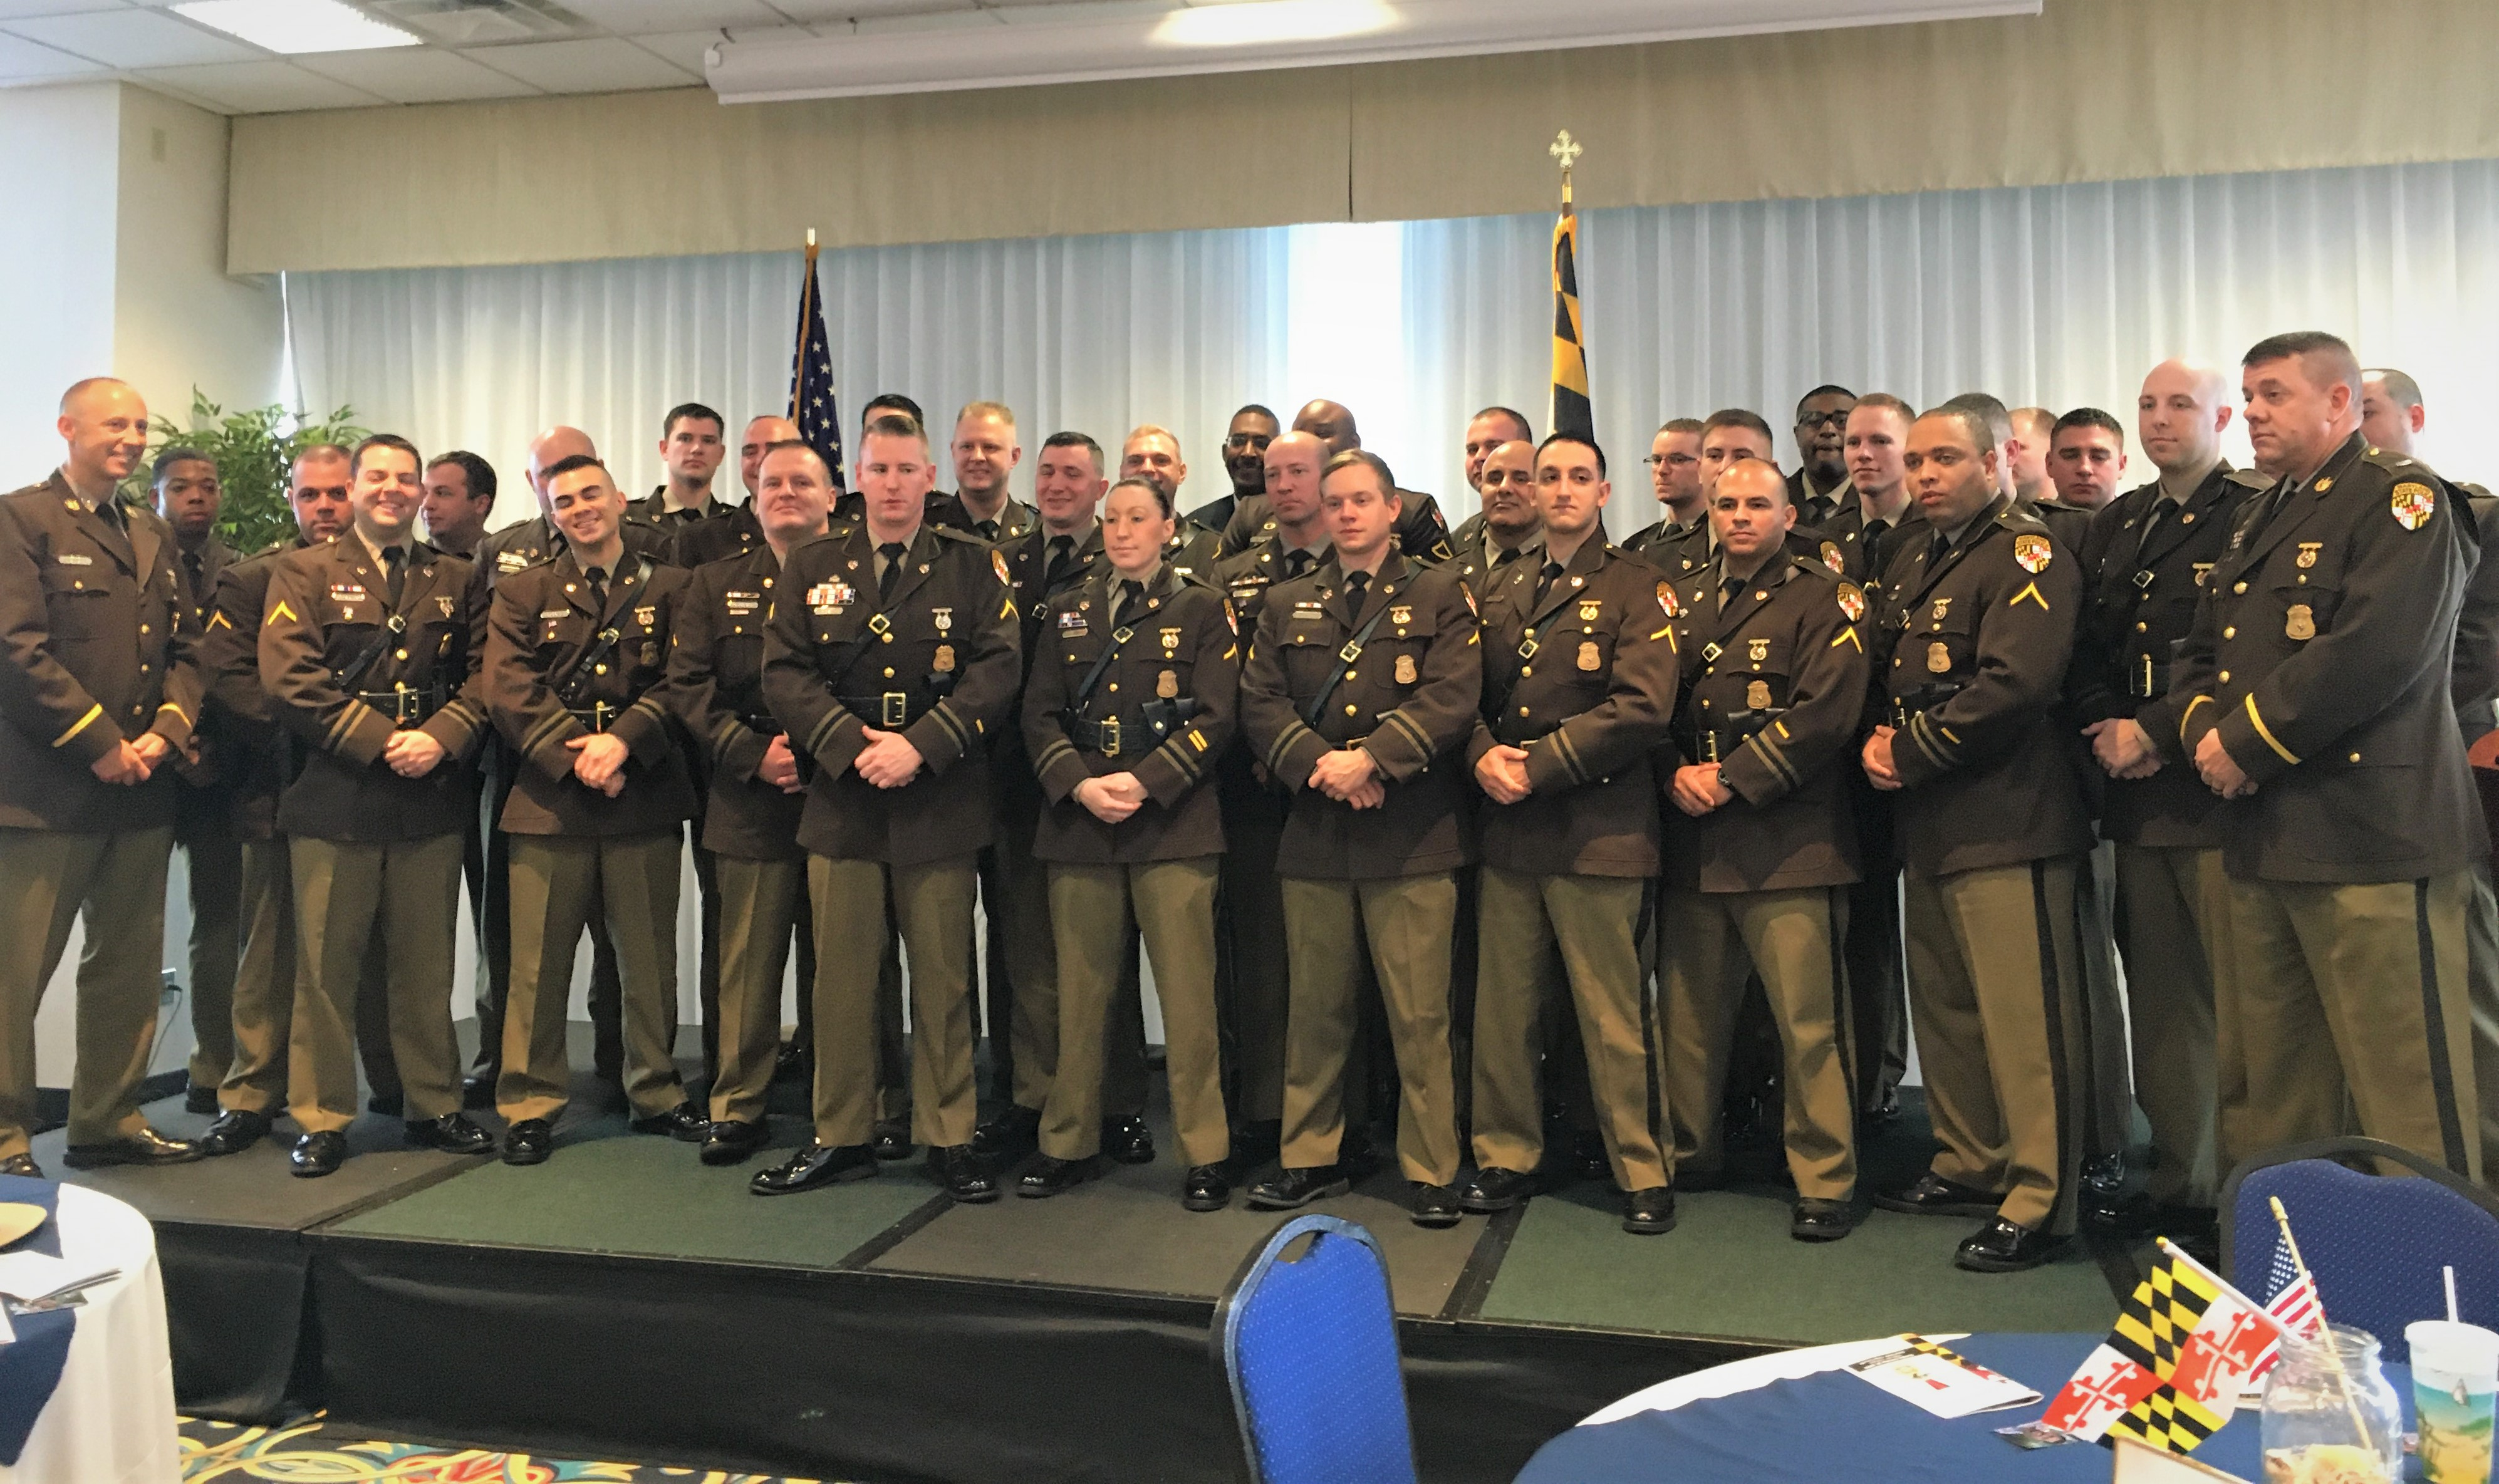 DWI HIT PARADE: Maryland State Police report 553 DUI arrests for October of 2019; Gov. Larry Hogan with families who remember their loved ones killed by impaired drivers